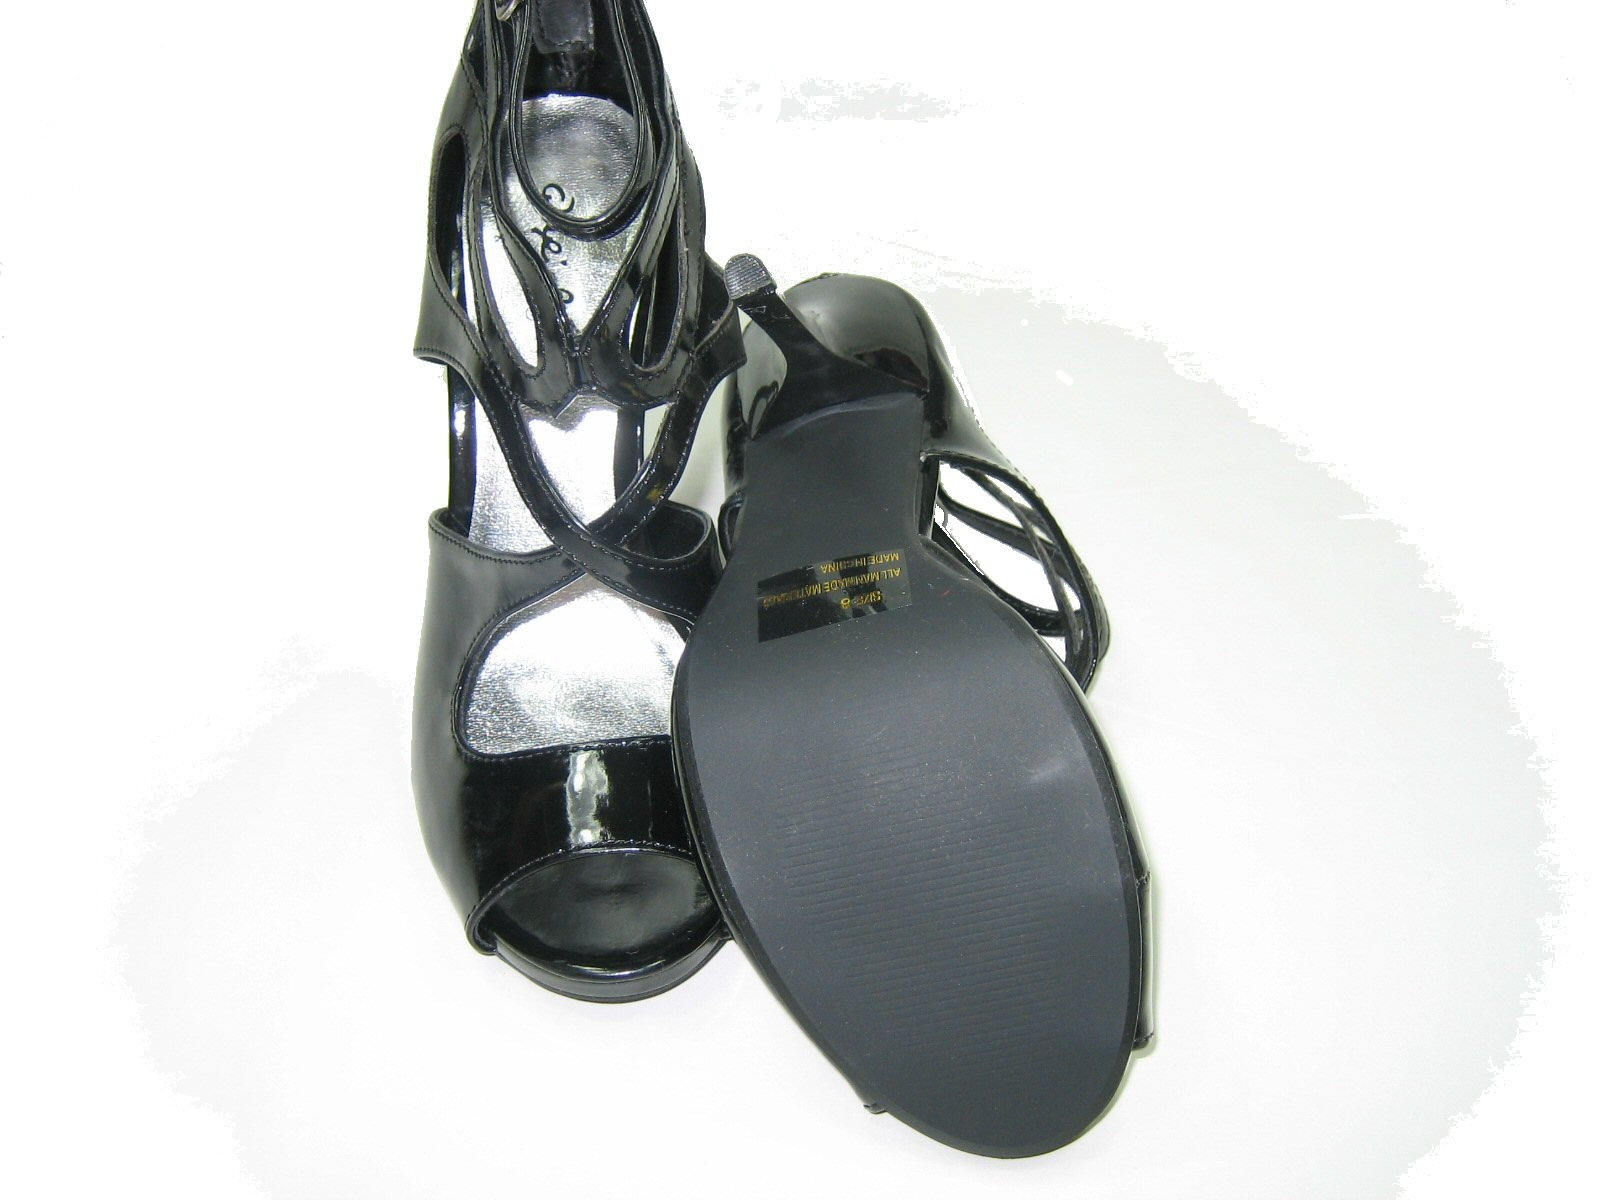 950d7fd8795 Qupid Demand-216 strappy pumps 5 inch stiletto high heel shoes black patent